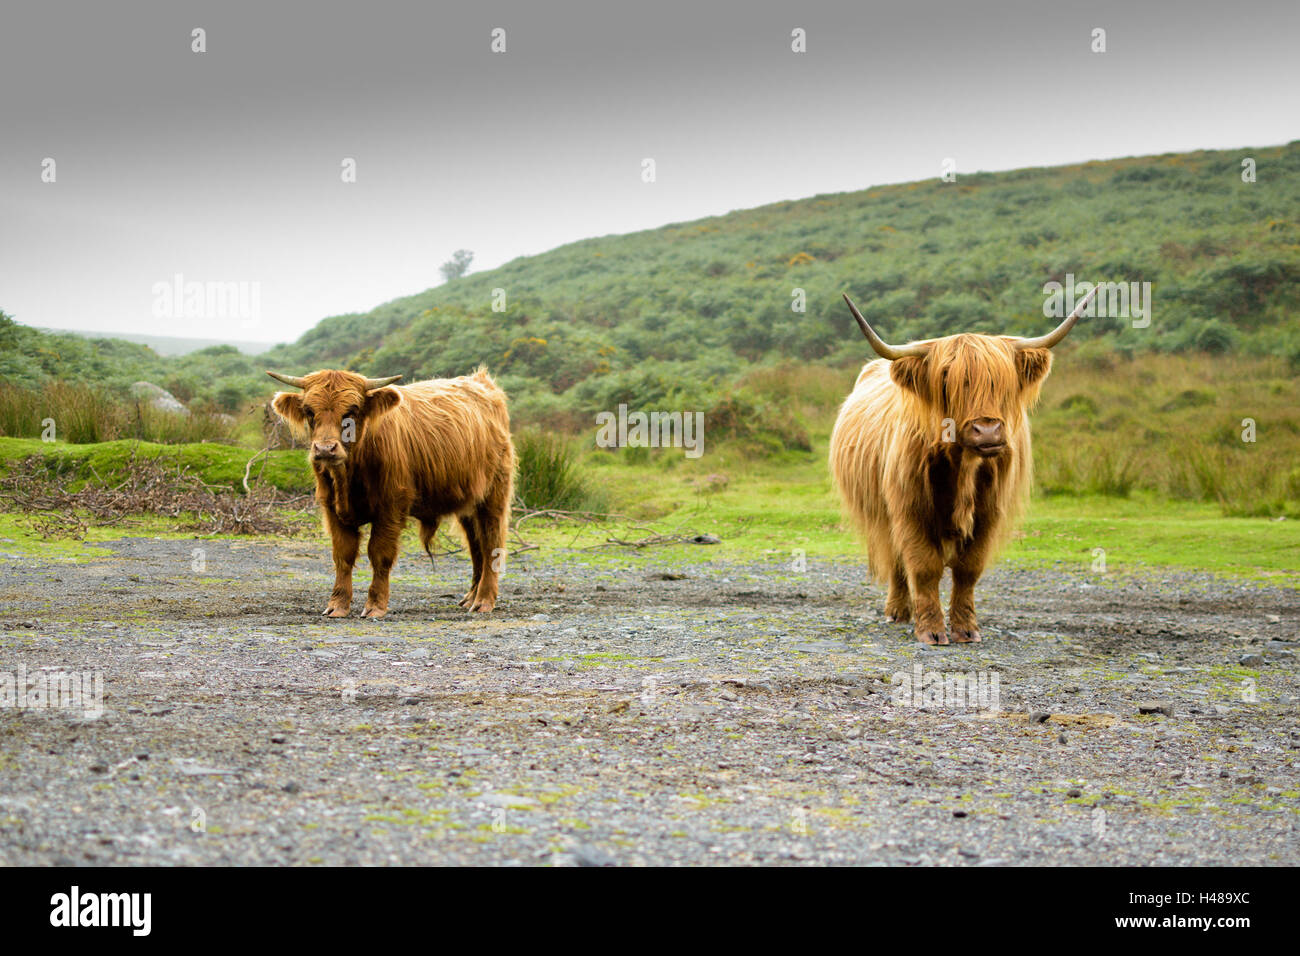 Highland Cattle Autumn Scotland Stock Photos & Highland